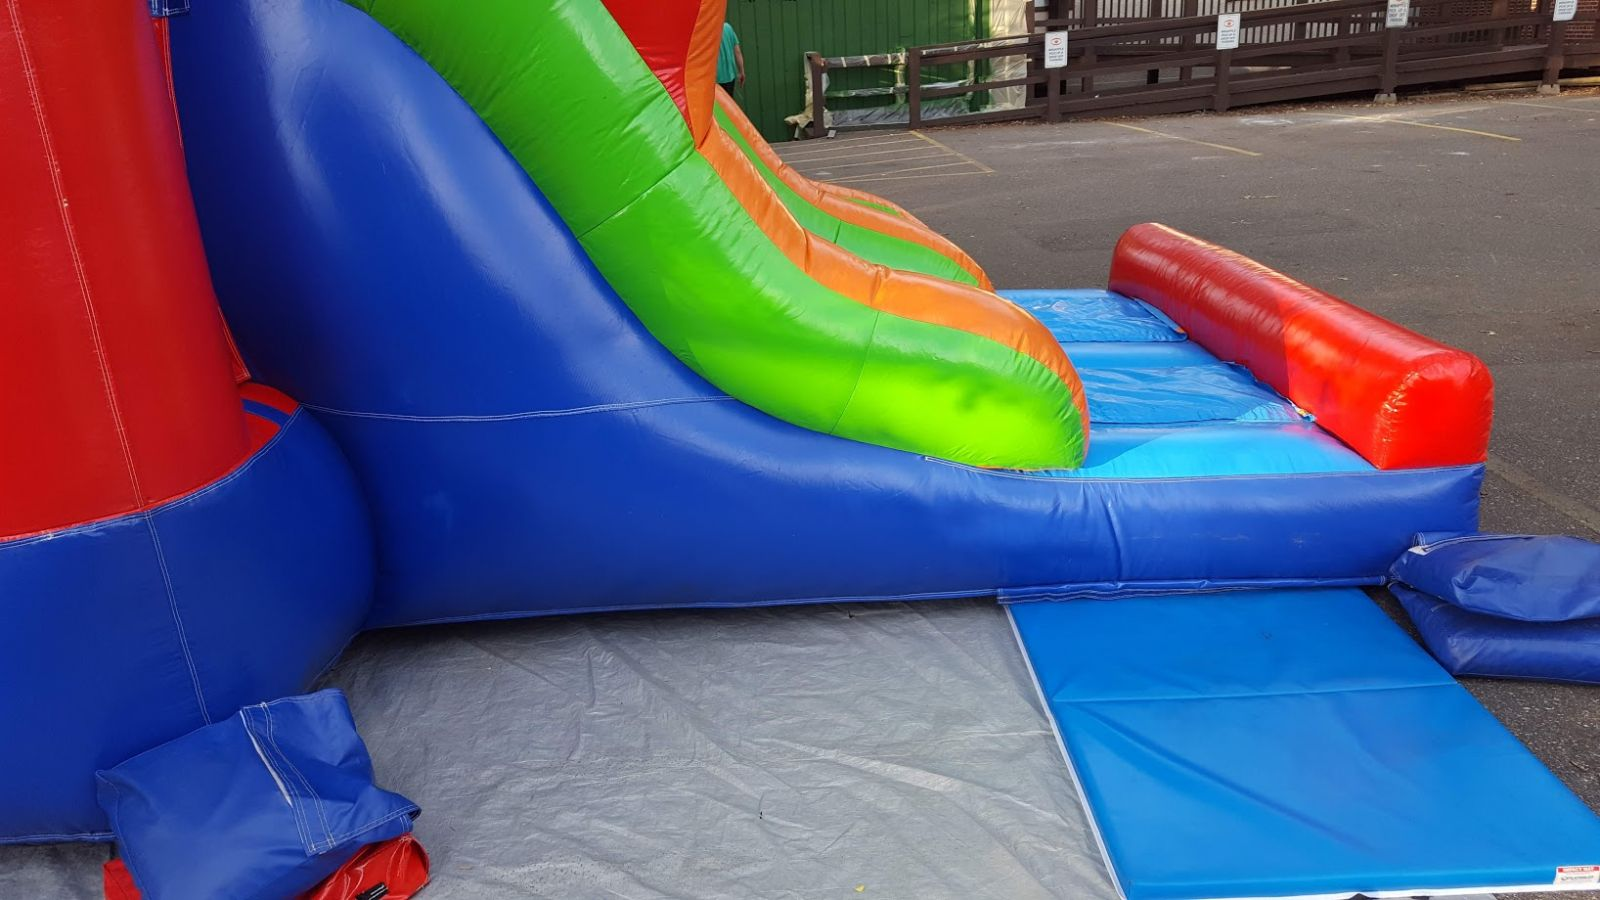 Bounce house exit surrounded by mats for safety